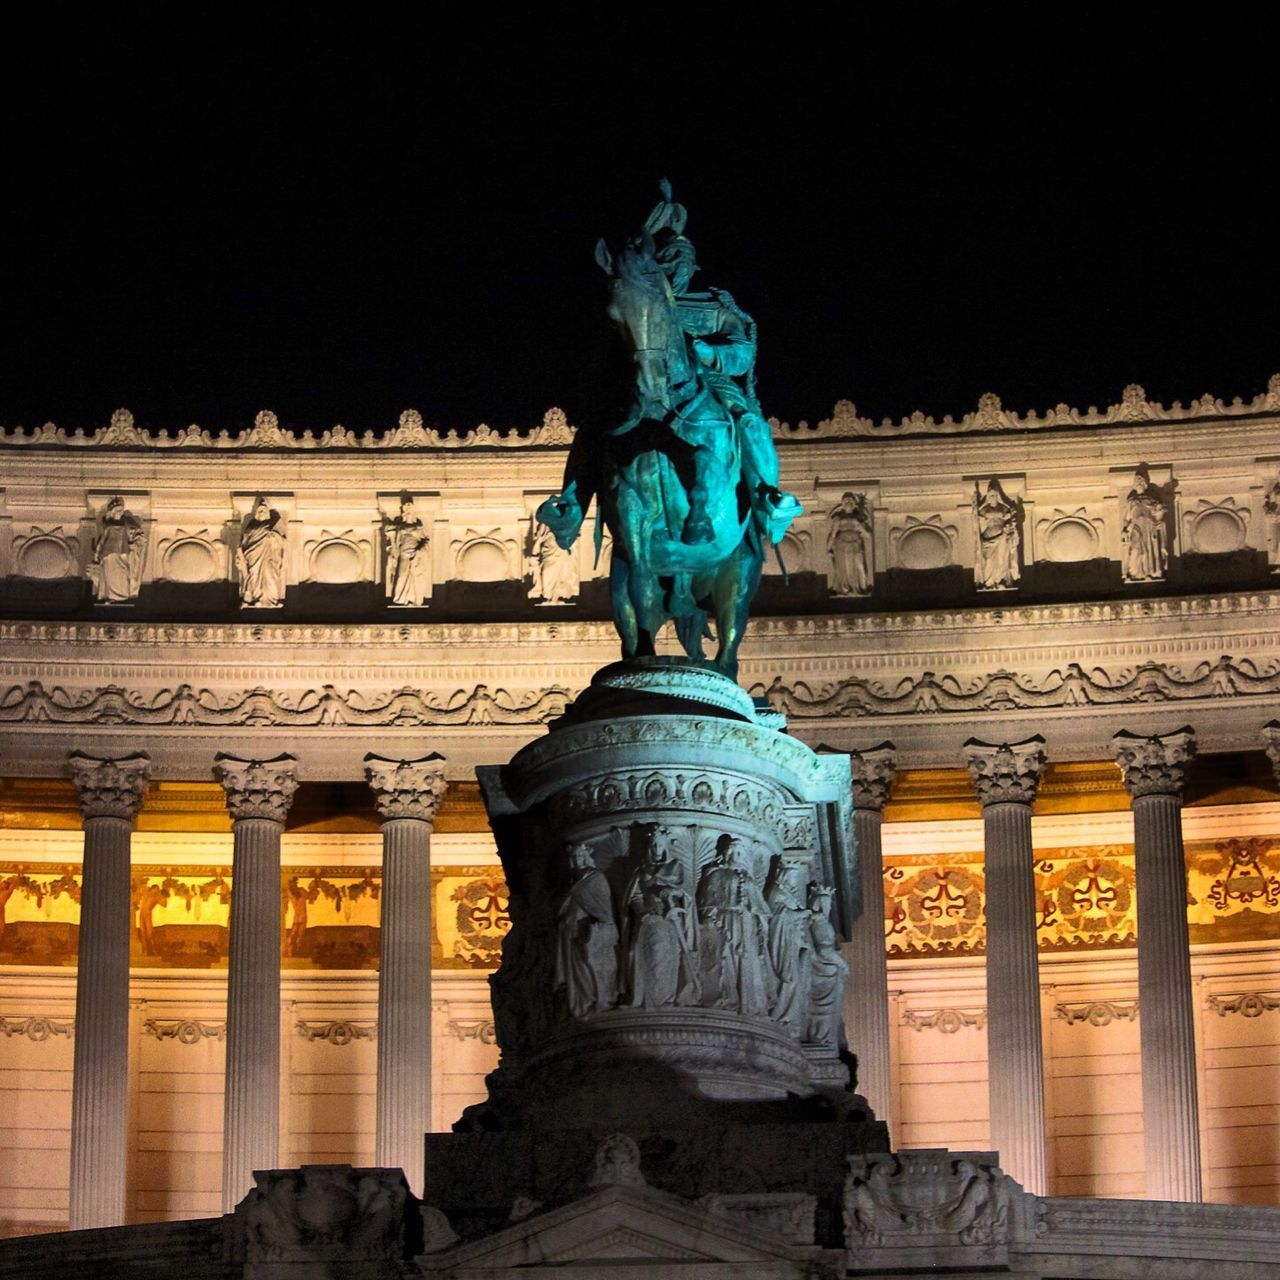 Rome Rome Italy Roma Roma Citta Eterna Altare Della Patria Rome By Night I Love My City Roma By Night Eyeemphoto